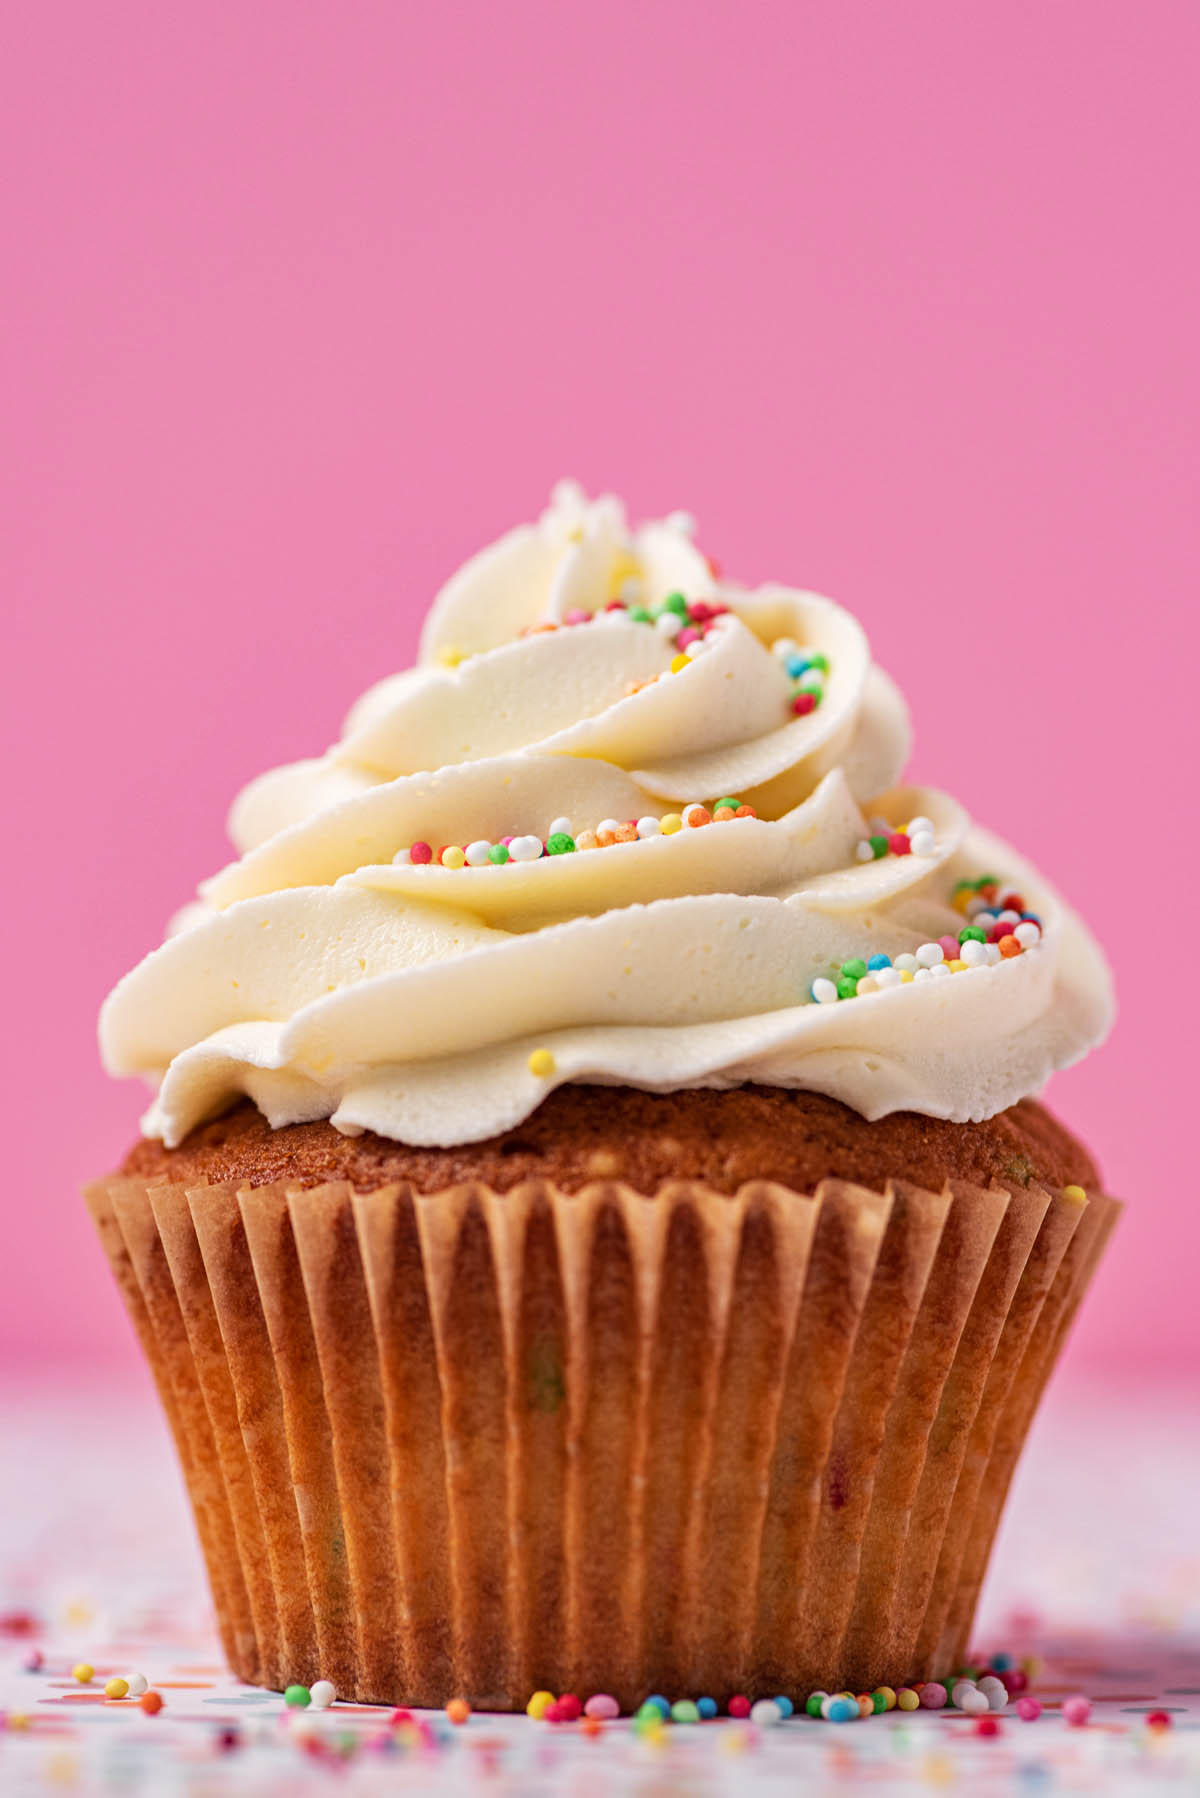 Close up of a buttercream frosted cupcake with small rainbow sprinkles.